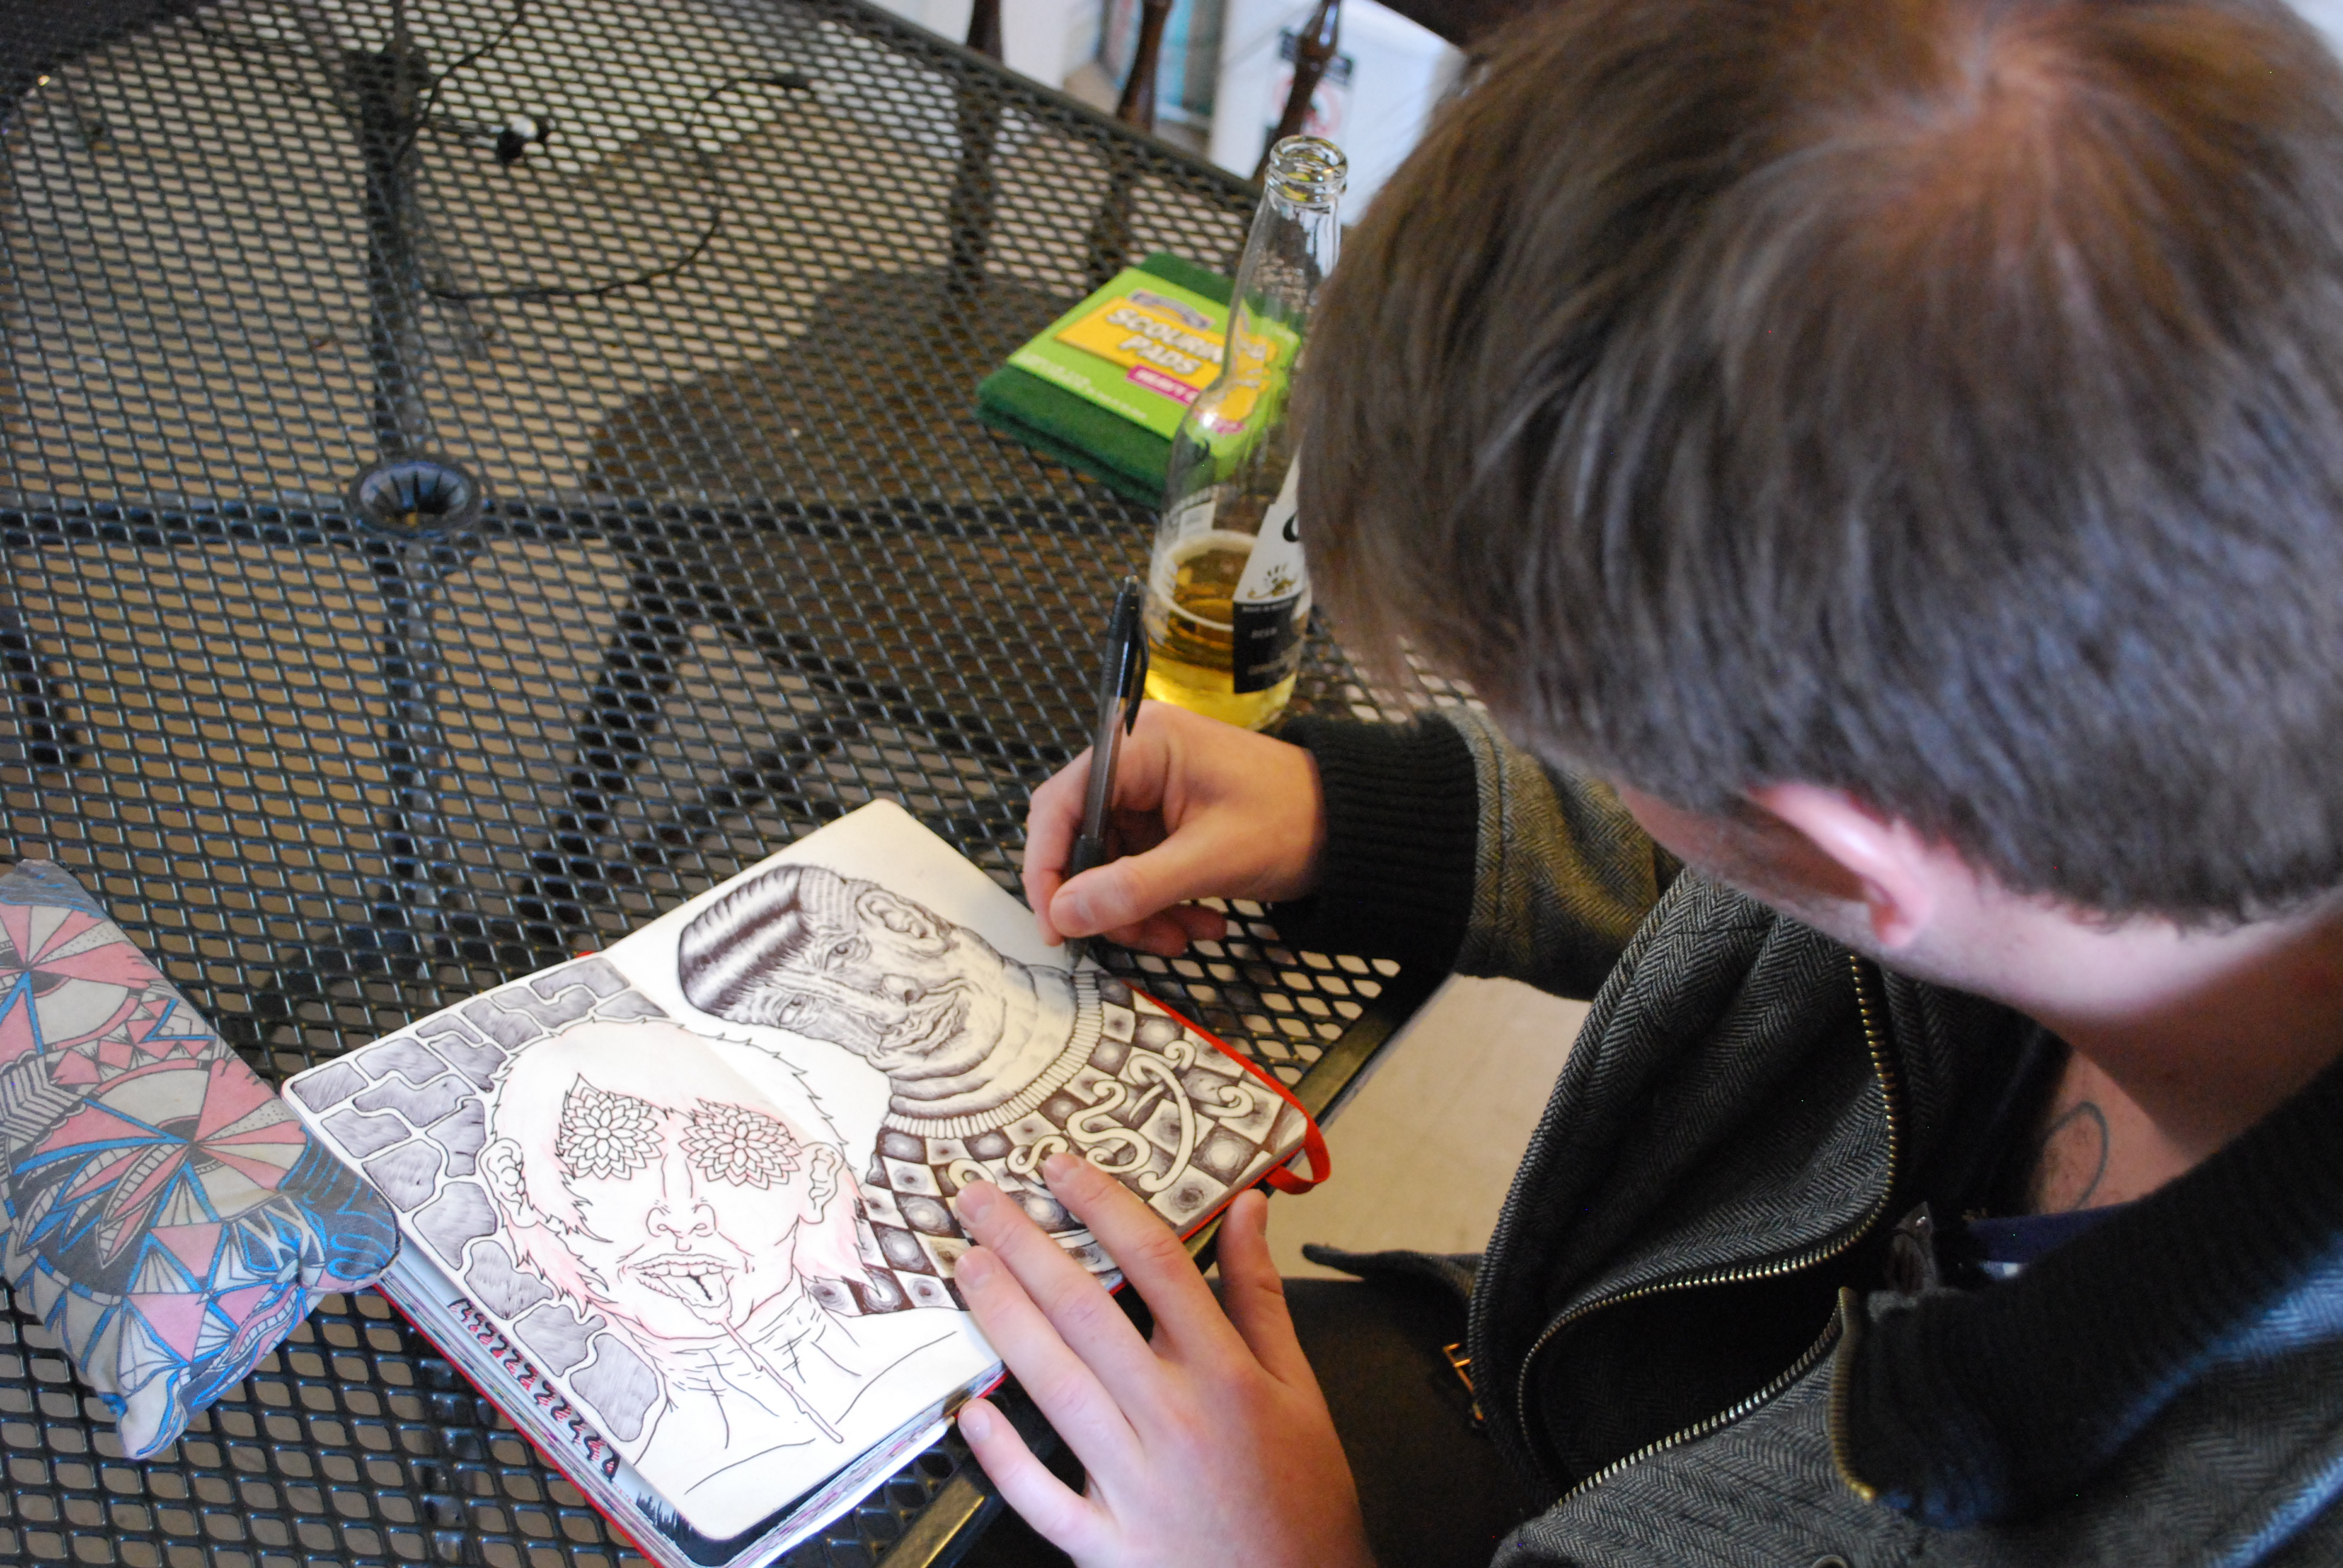 Artist Baylor Estes sits in the dining area of Drifter Jack's Hostel sketching future design ideas. By Kaine Korzekwa